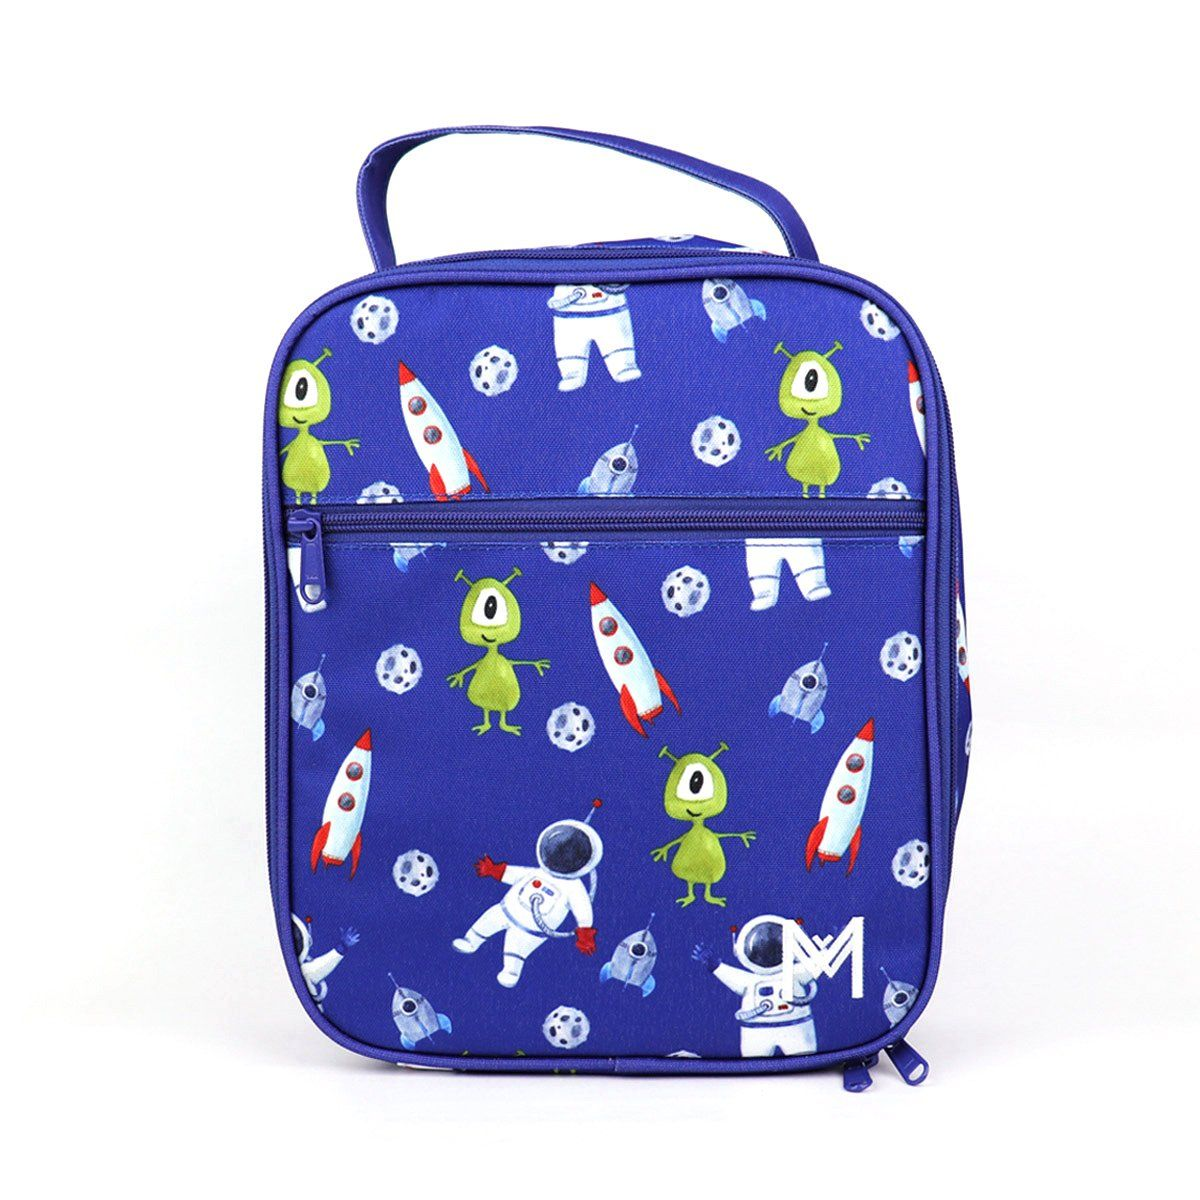 Insulated Lunch Bag (Space)